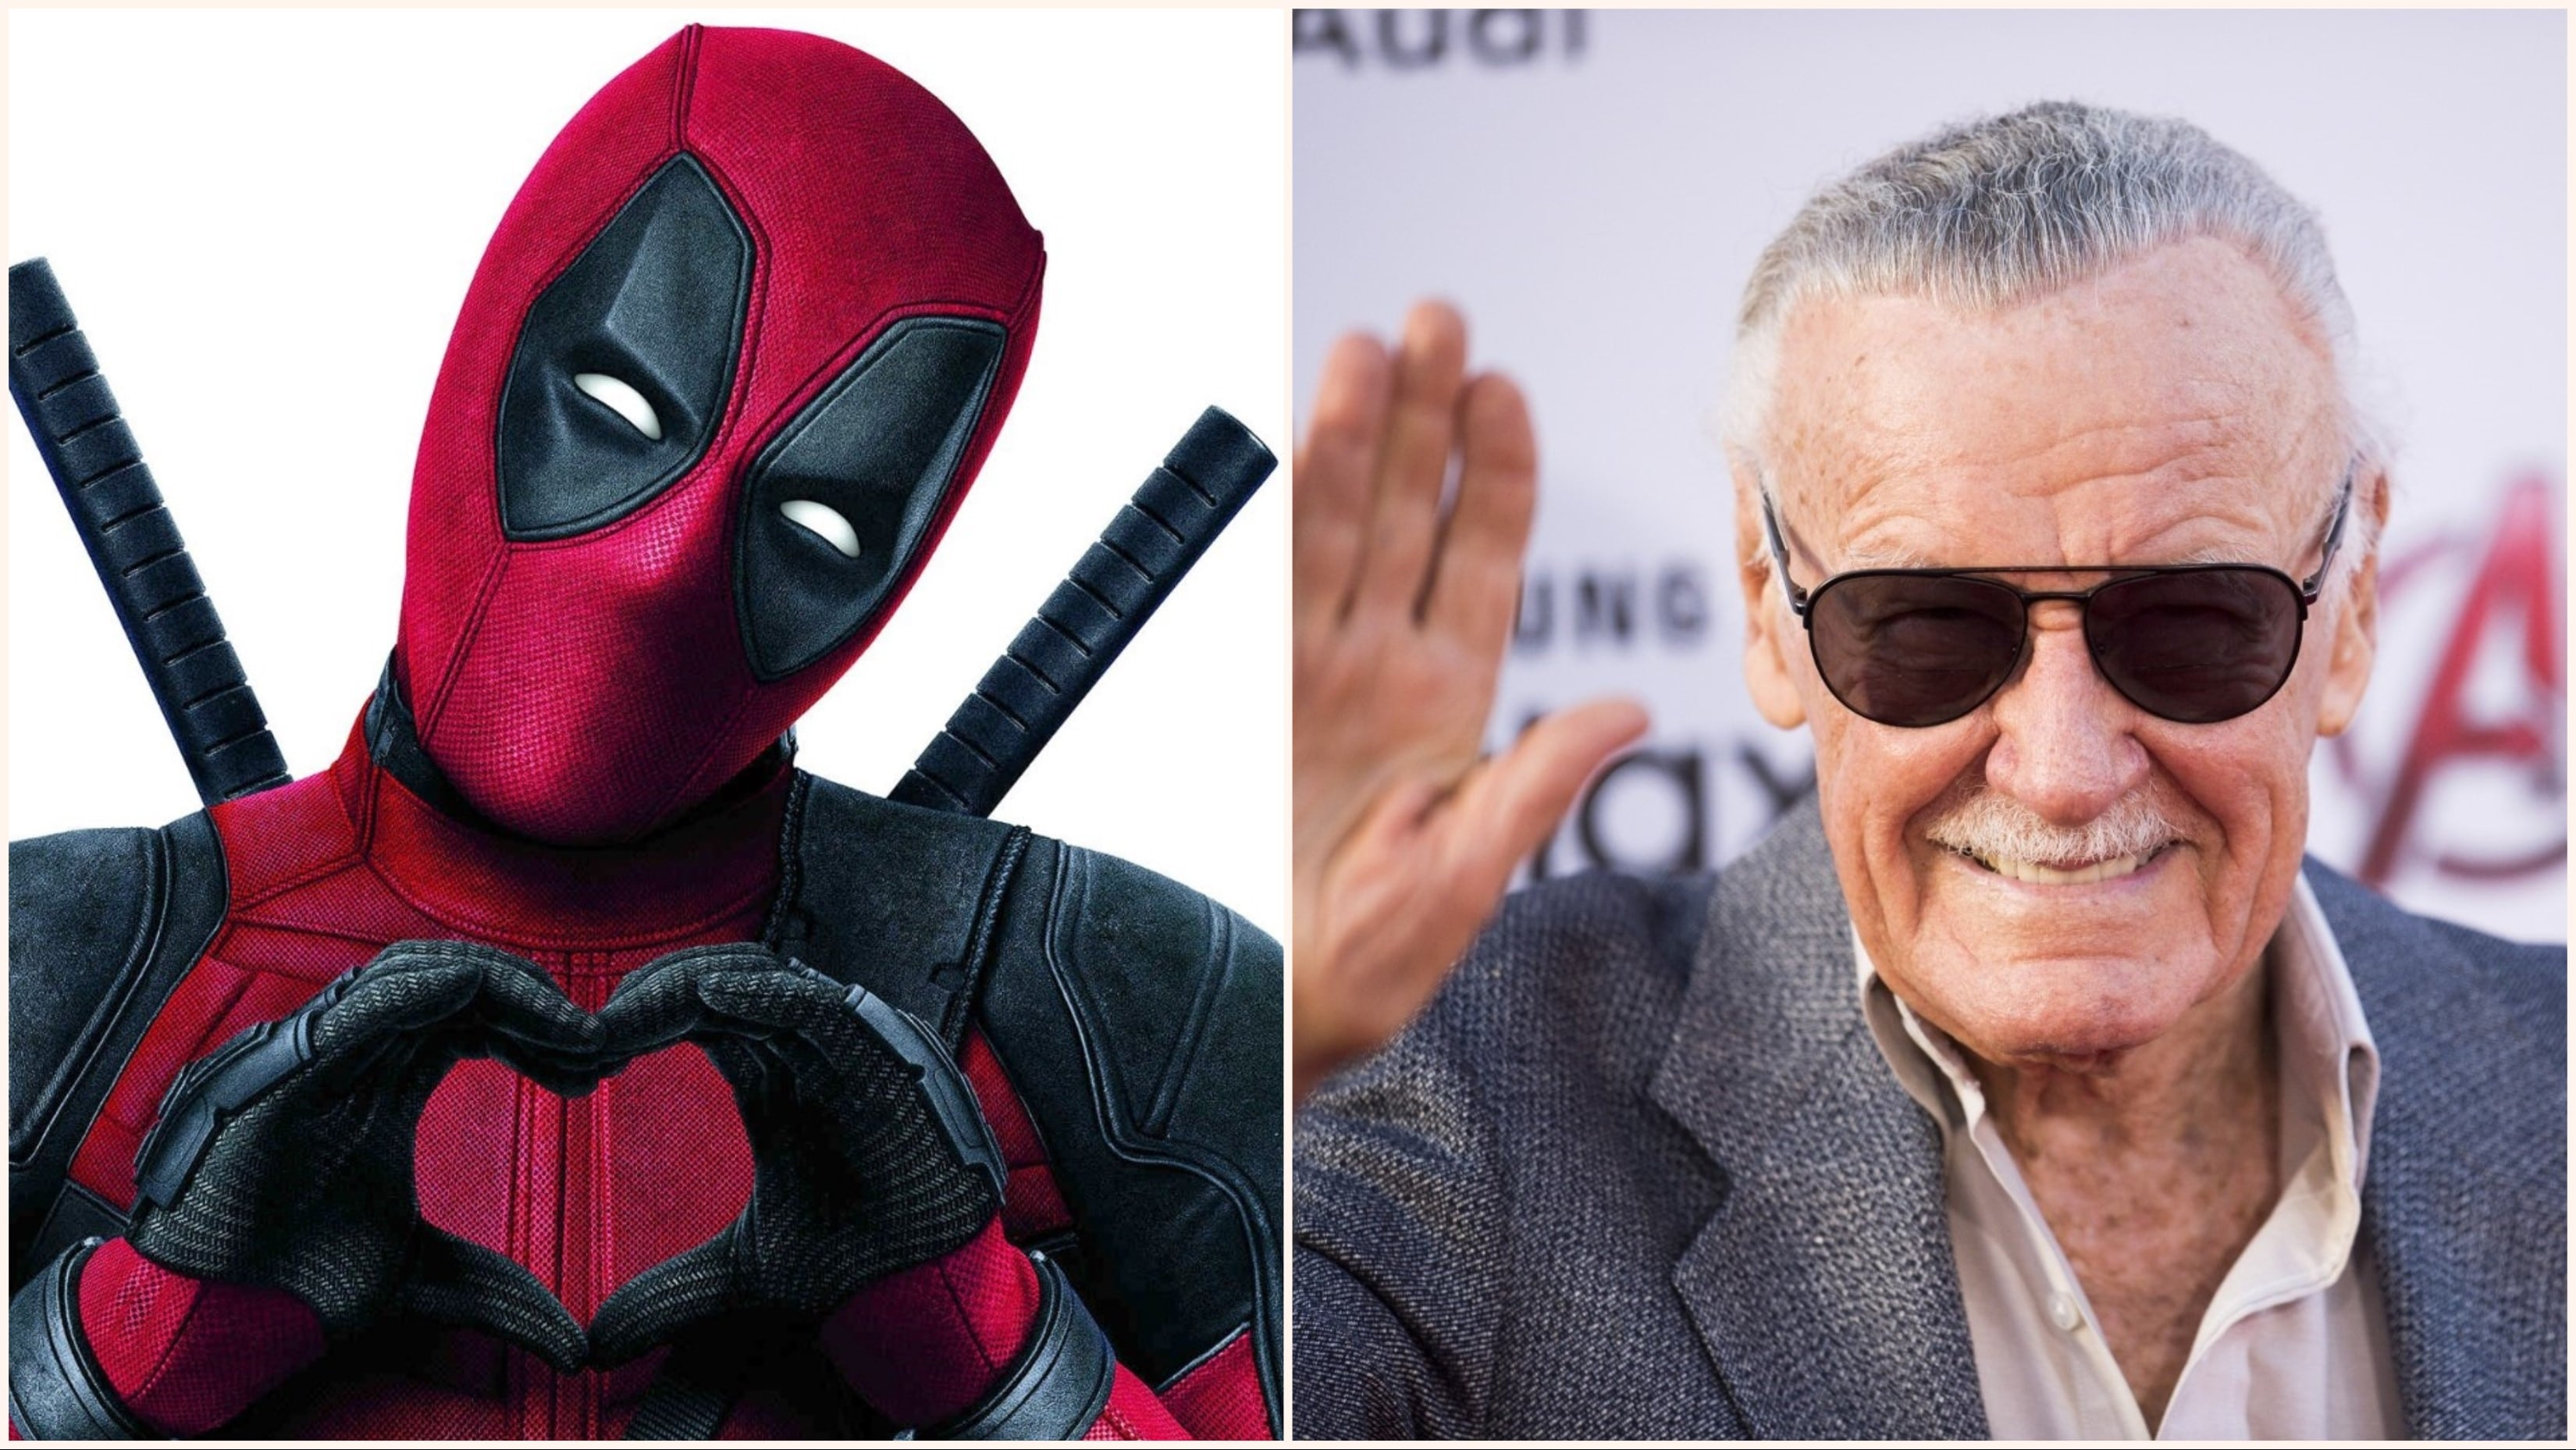 Fans Want Deadpool To Replace Stan Lee's Cameos